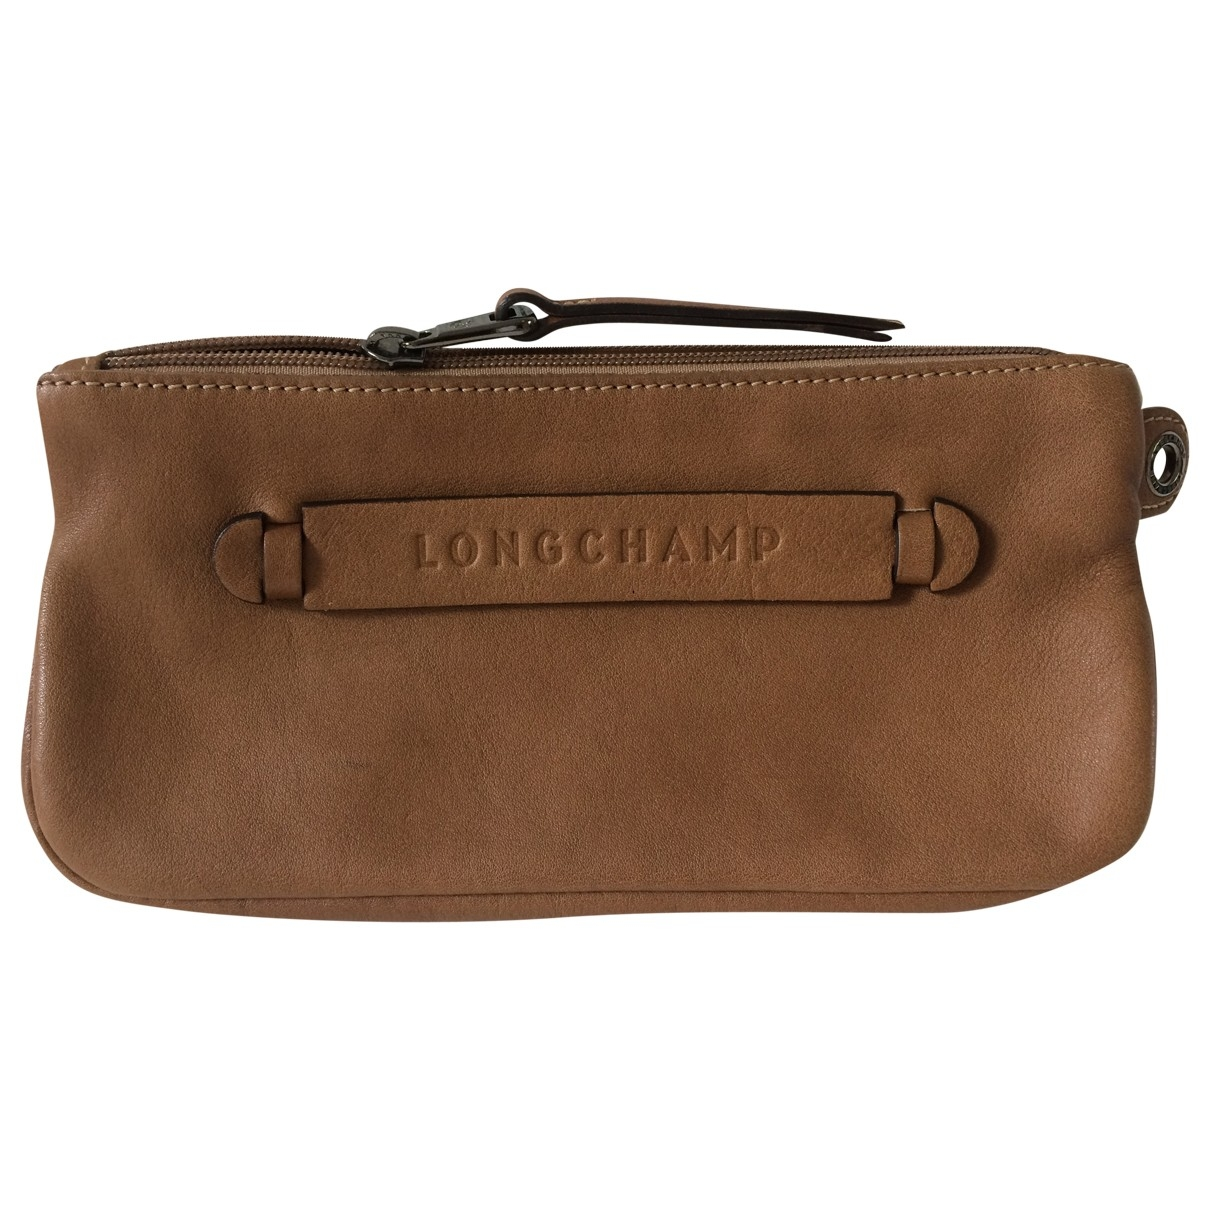 Longchamp \N Camel Leather Clutch bag for Women \N